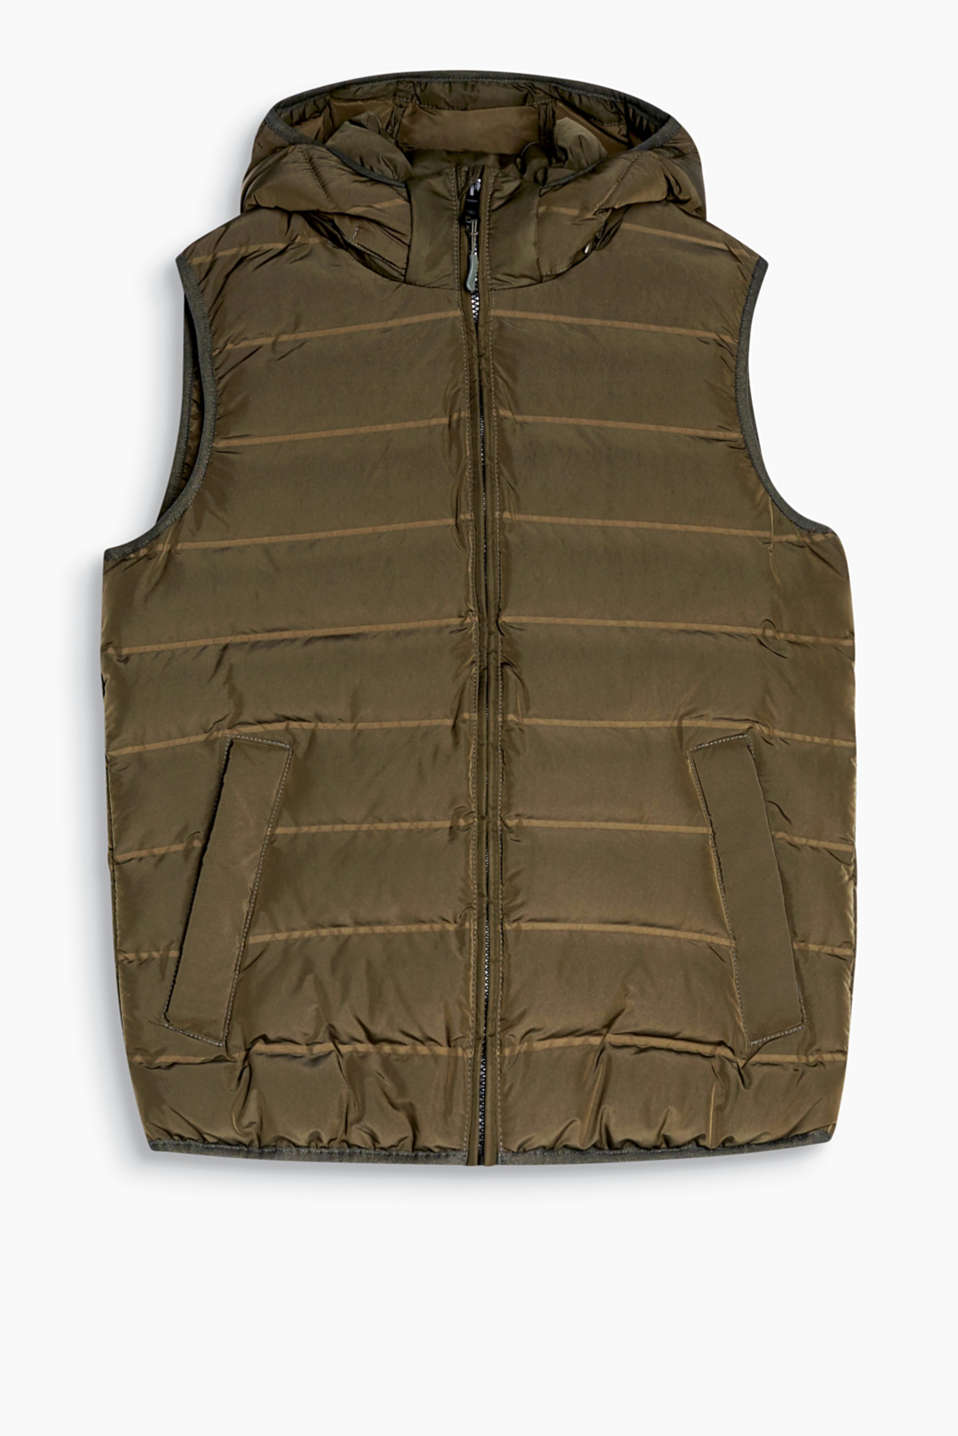 A fabulous basic! You can incorporate this body warmer into a wide range of autumn and winter outfits.